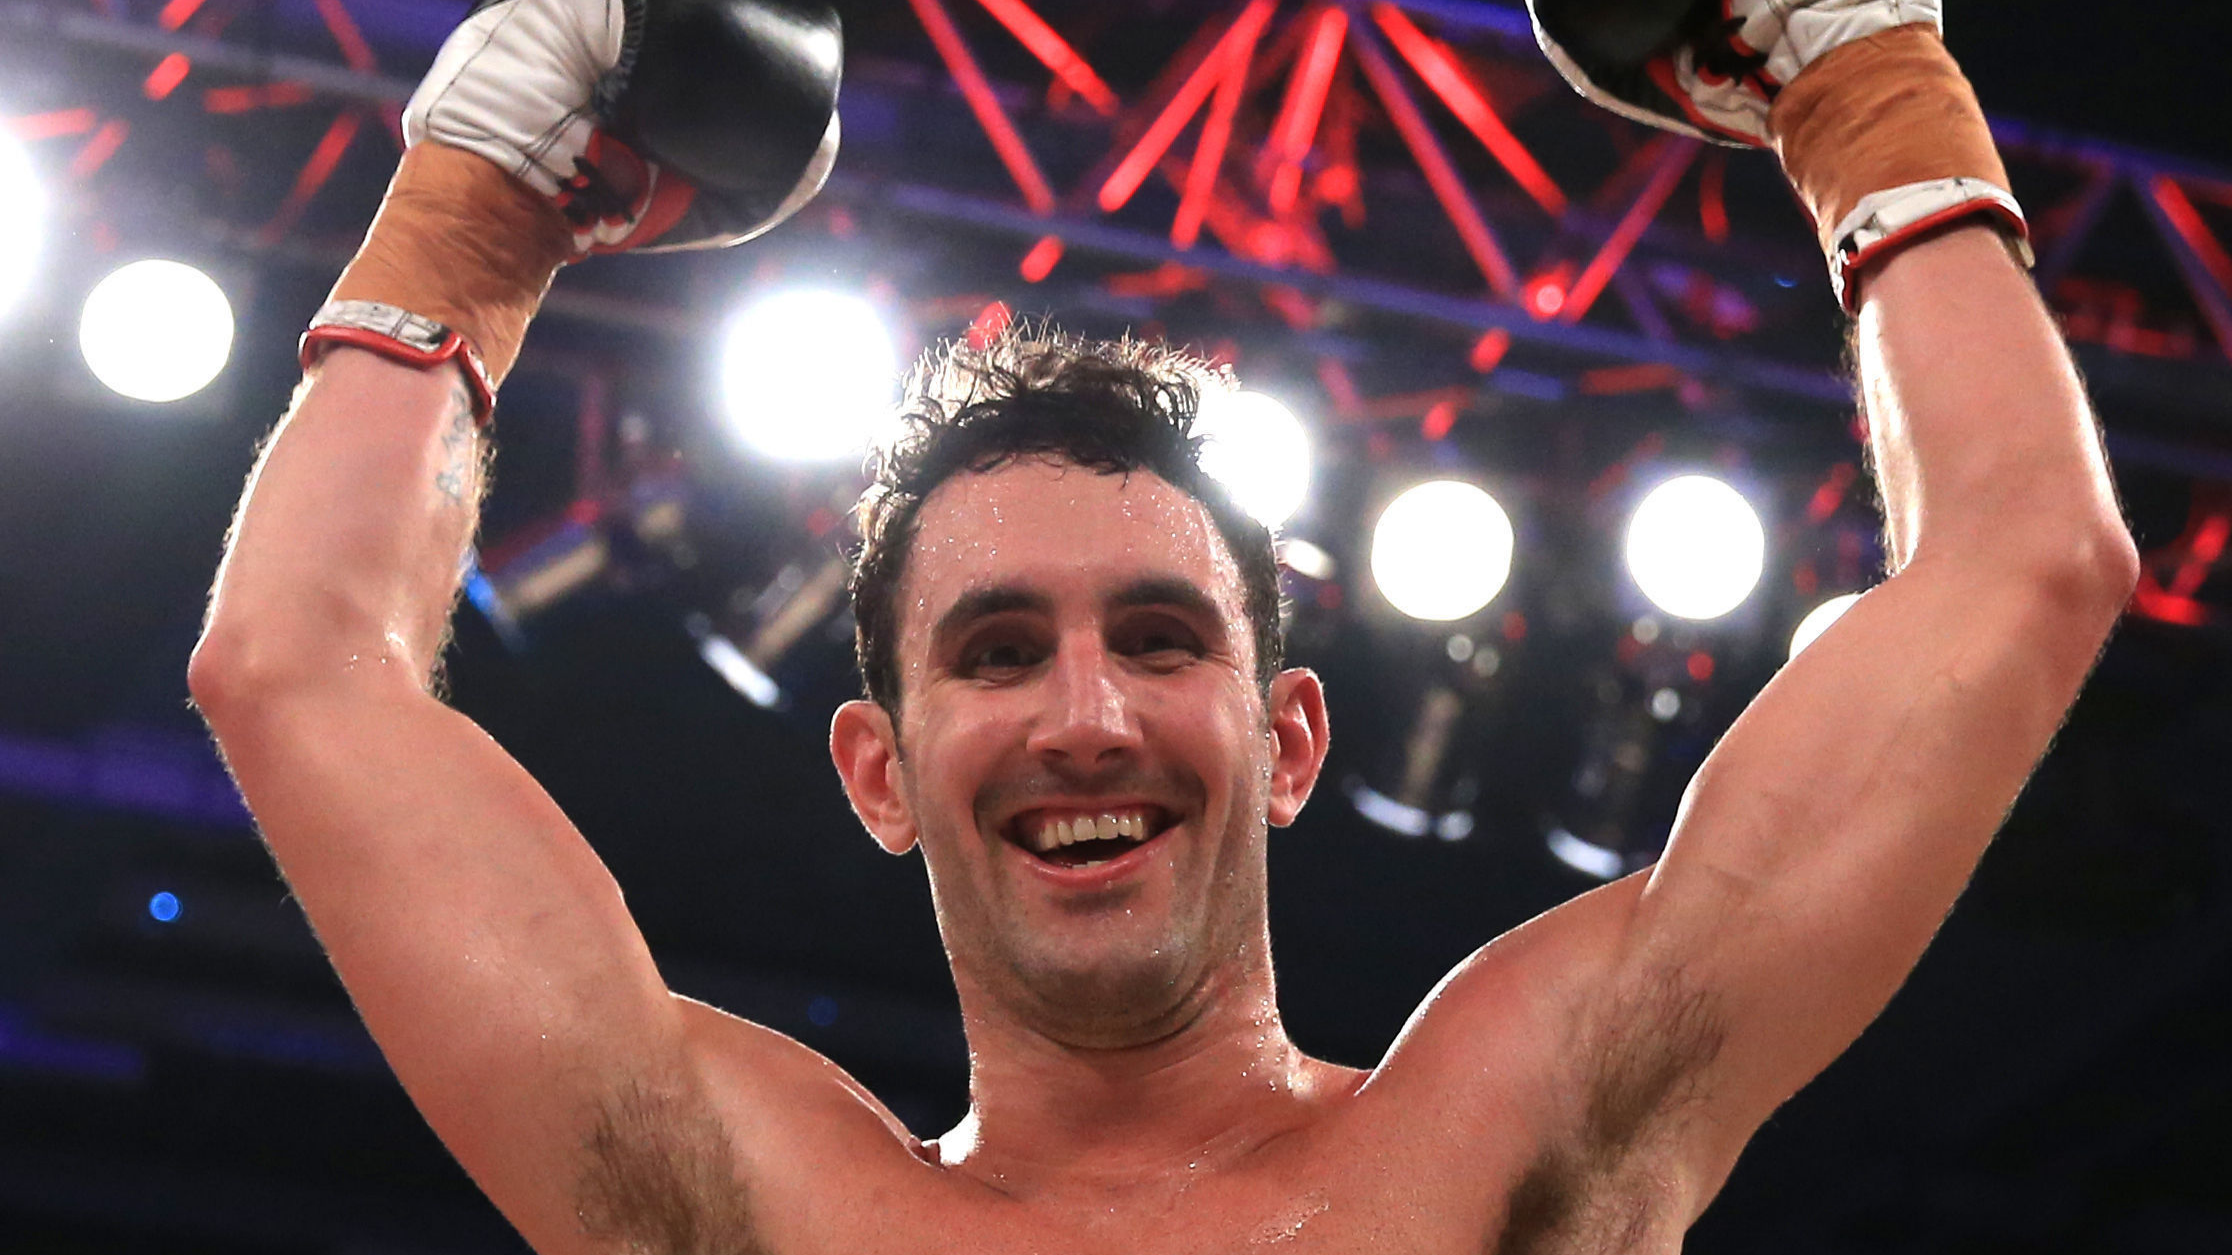 Sheffield Boxer Scott Westgarth Dead After Collapsing Following Fight